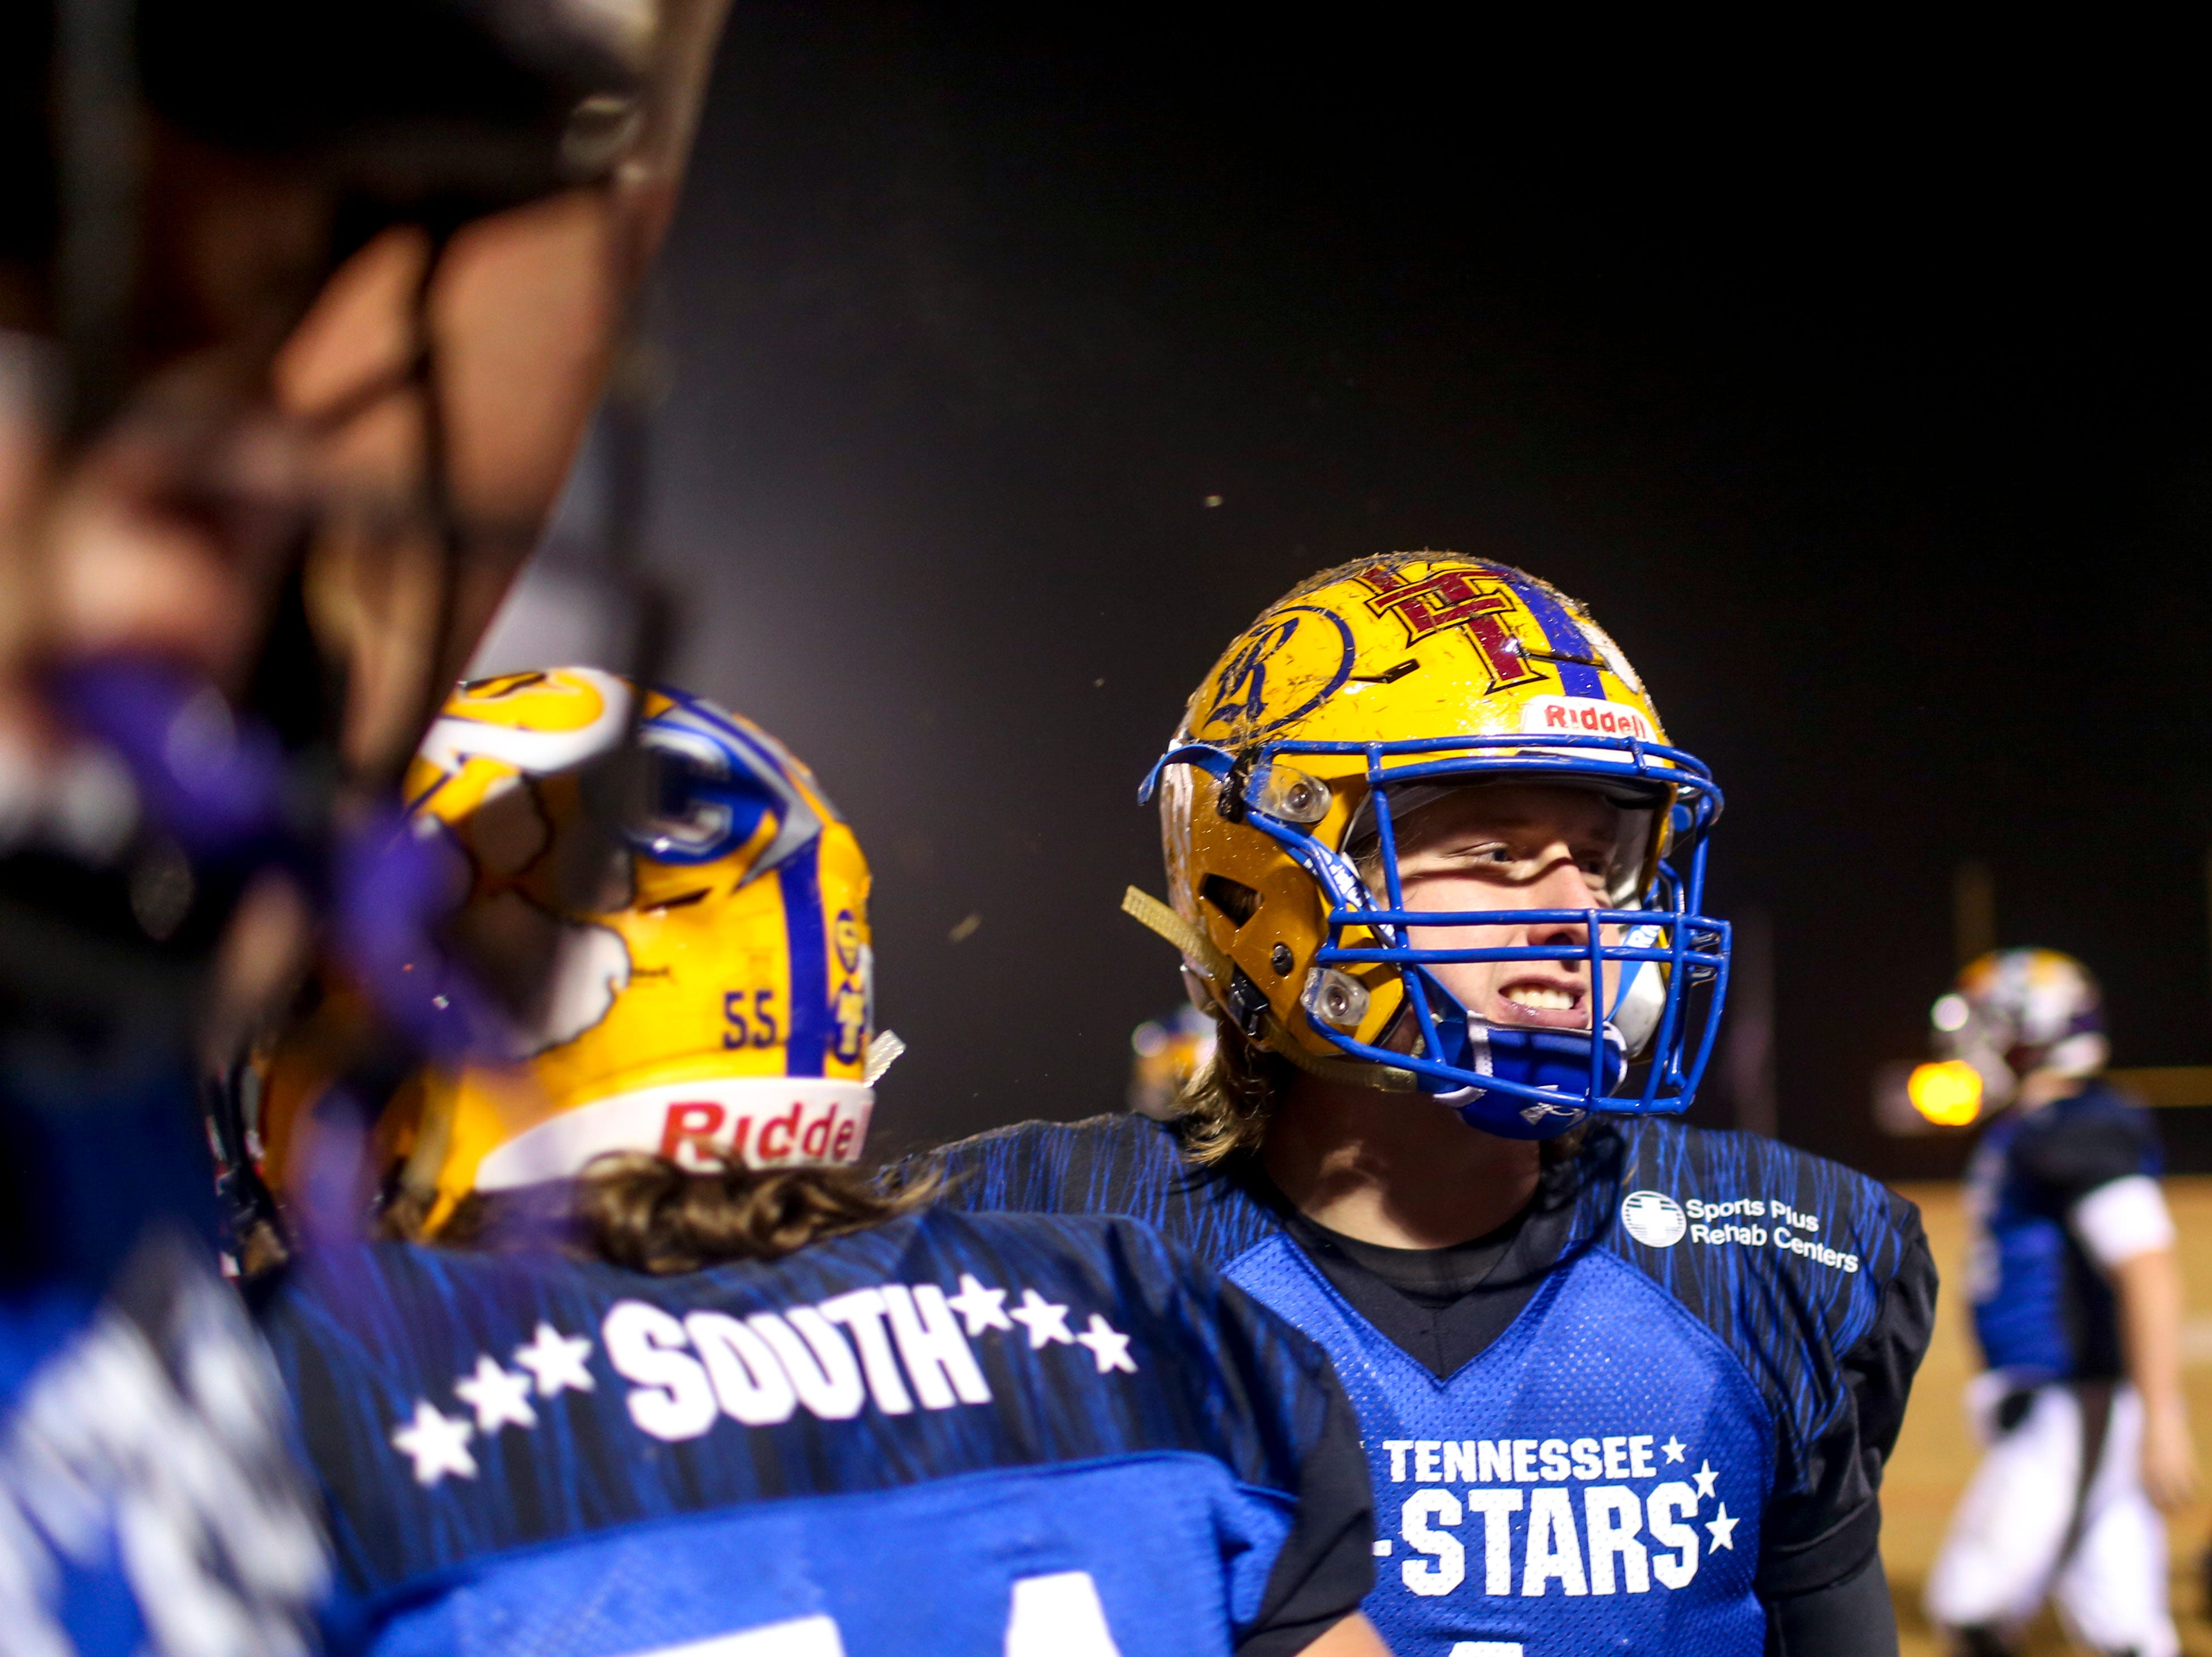 Riverside's Stone Frost (4) celebrates with teammates on the sidelines during the West Tennessee All-Star football game at University School of Jackson in Jackson, Tenn., on Friday, Dec. 7, 2018.